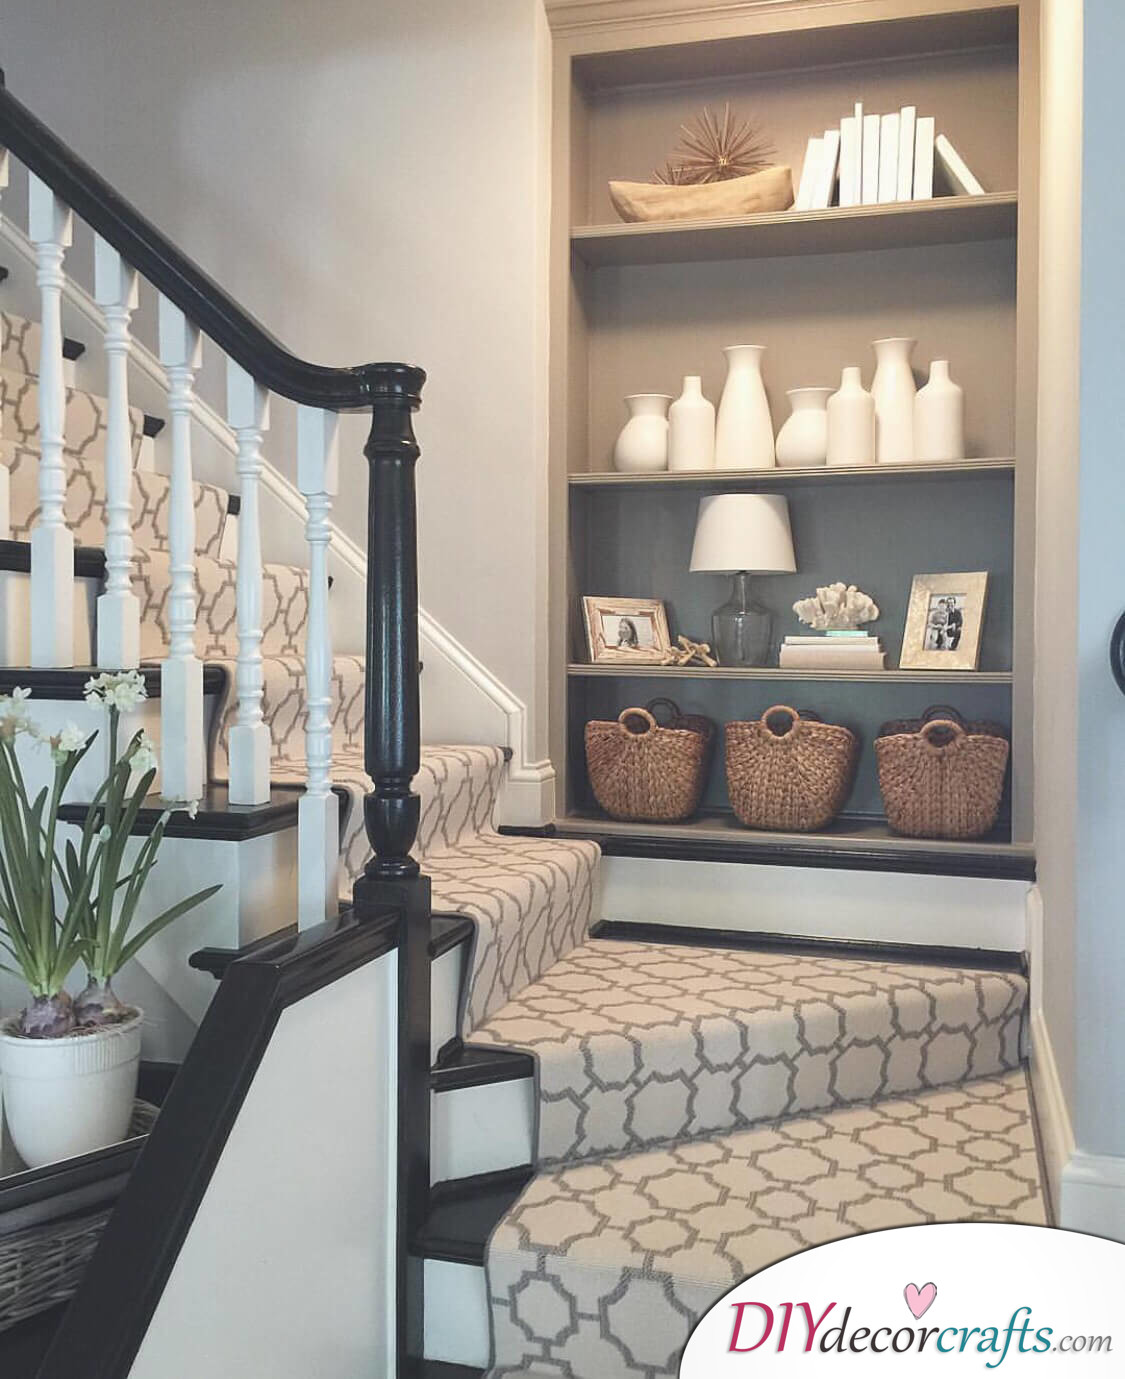 Simple Ways To Freshen Up Stairways, Built-In Storage Nook